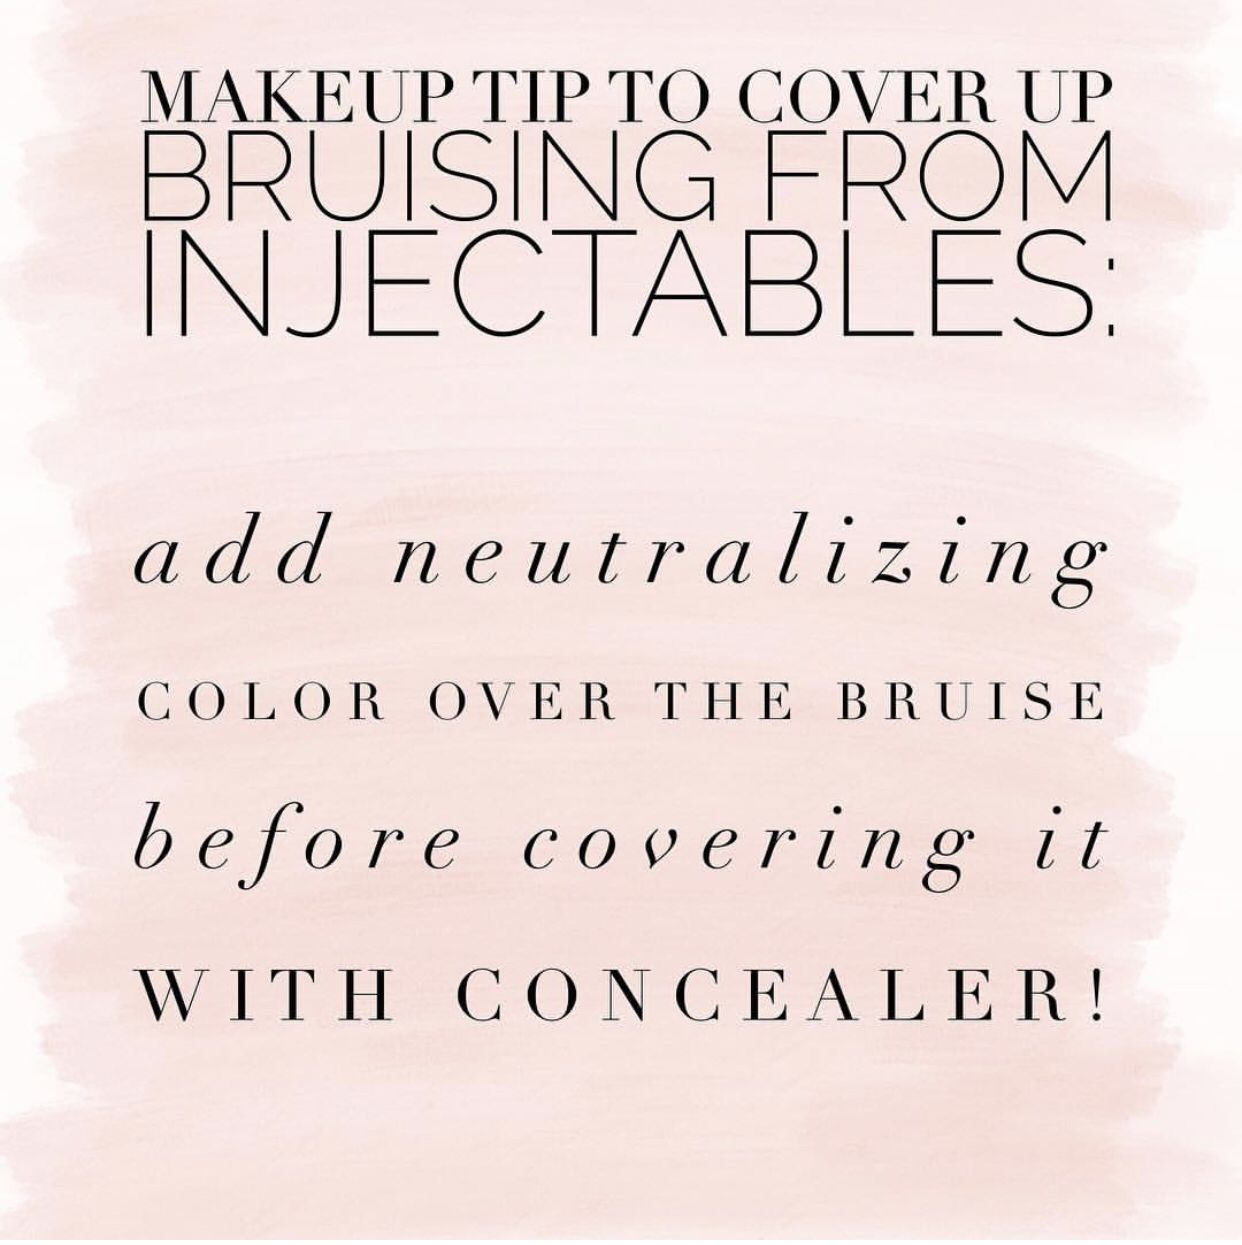 Tips and tricks to cover up unwanted bruising! Best skin